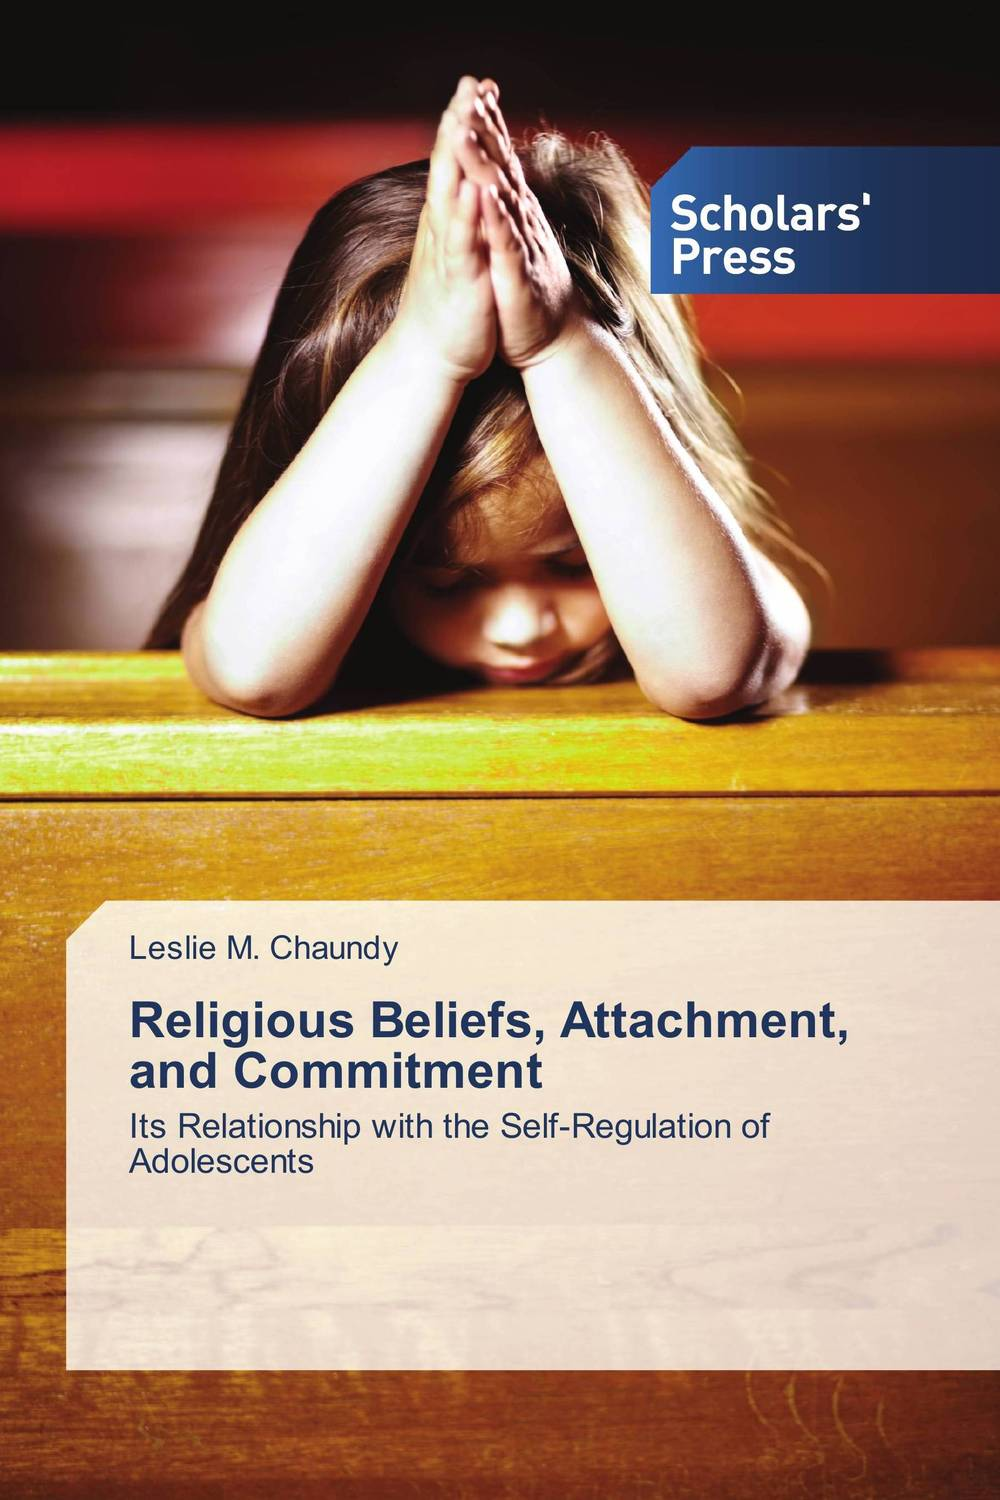 Religious Beliefs, Attachment, and Commitment